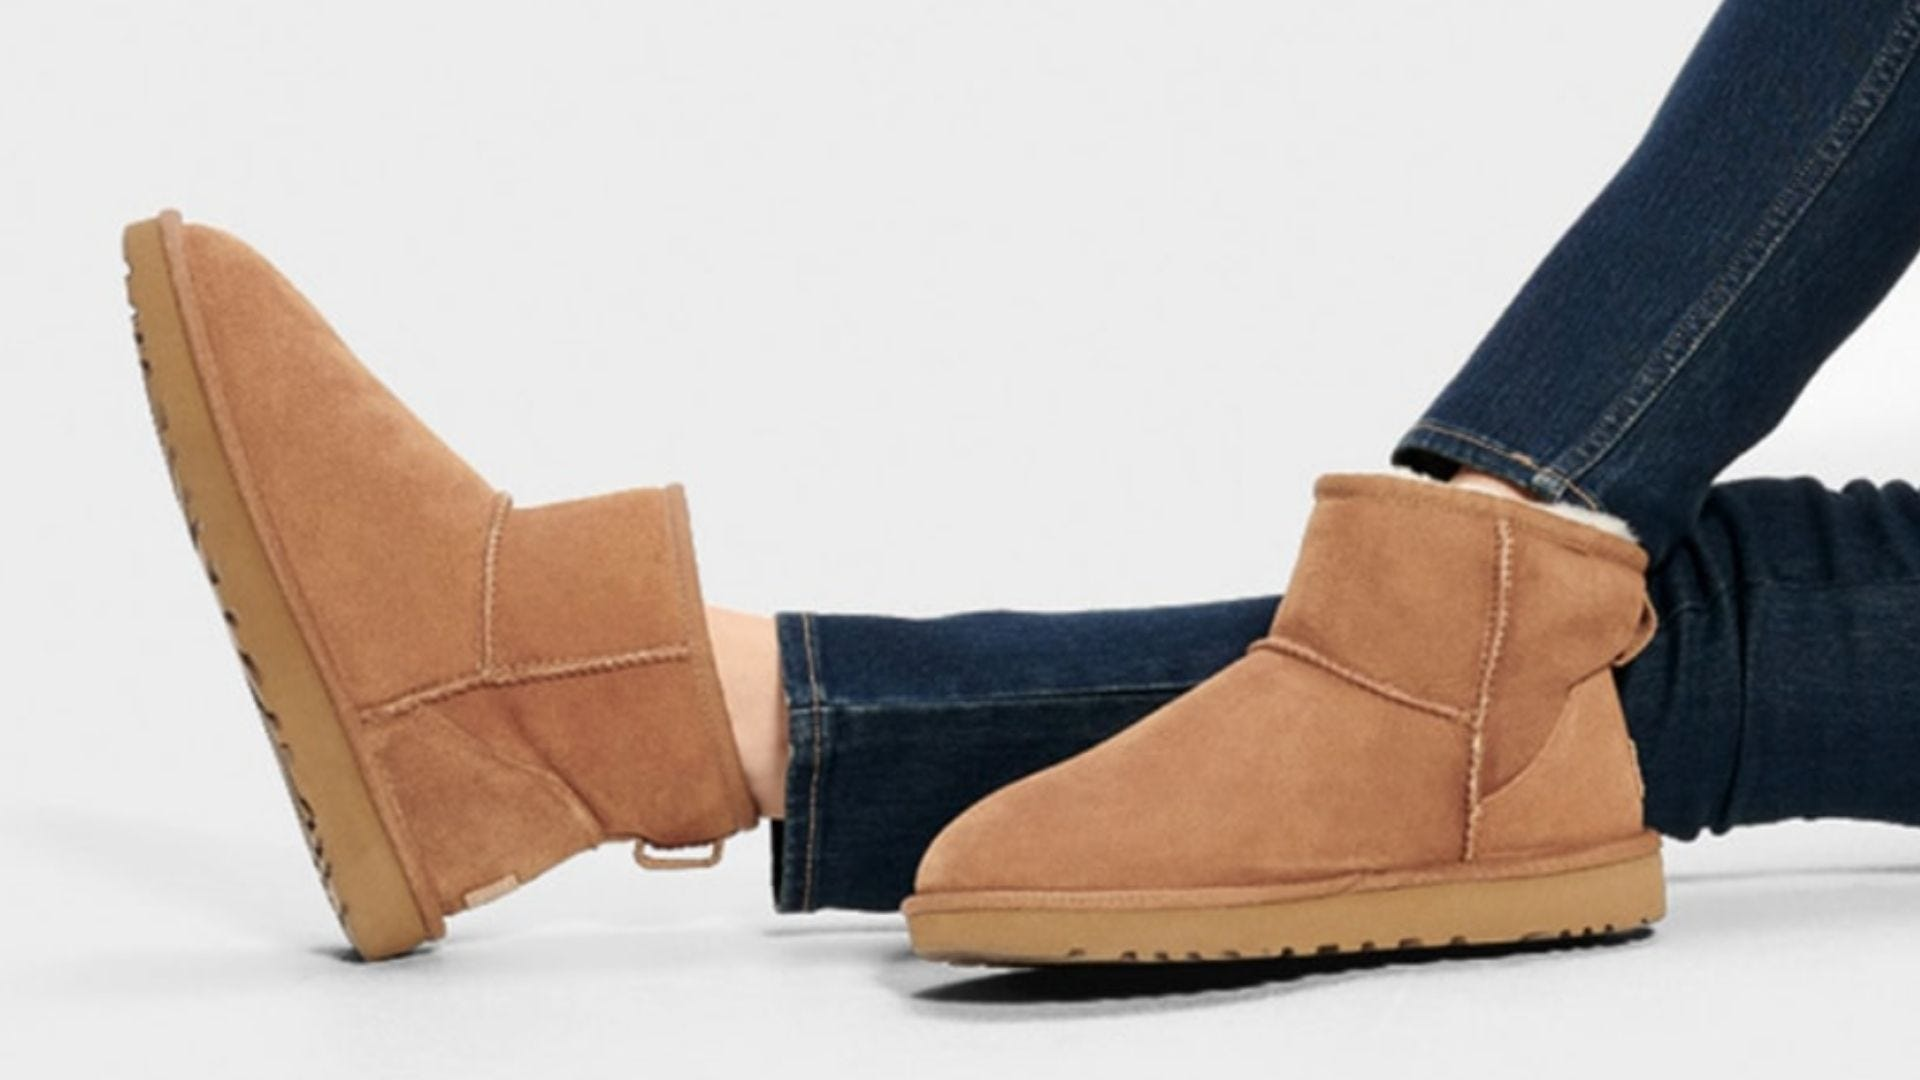 Cyber Monday 2020: The best Ugg and